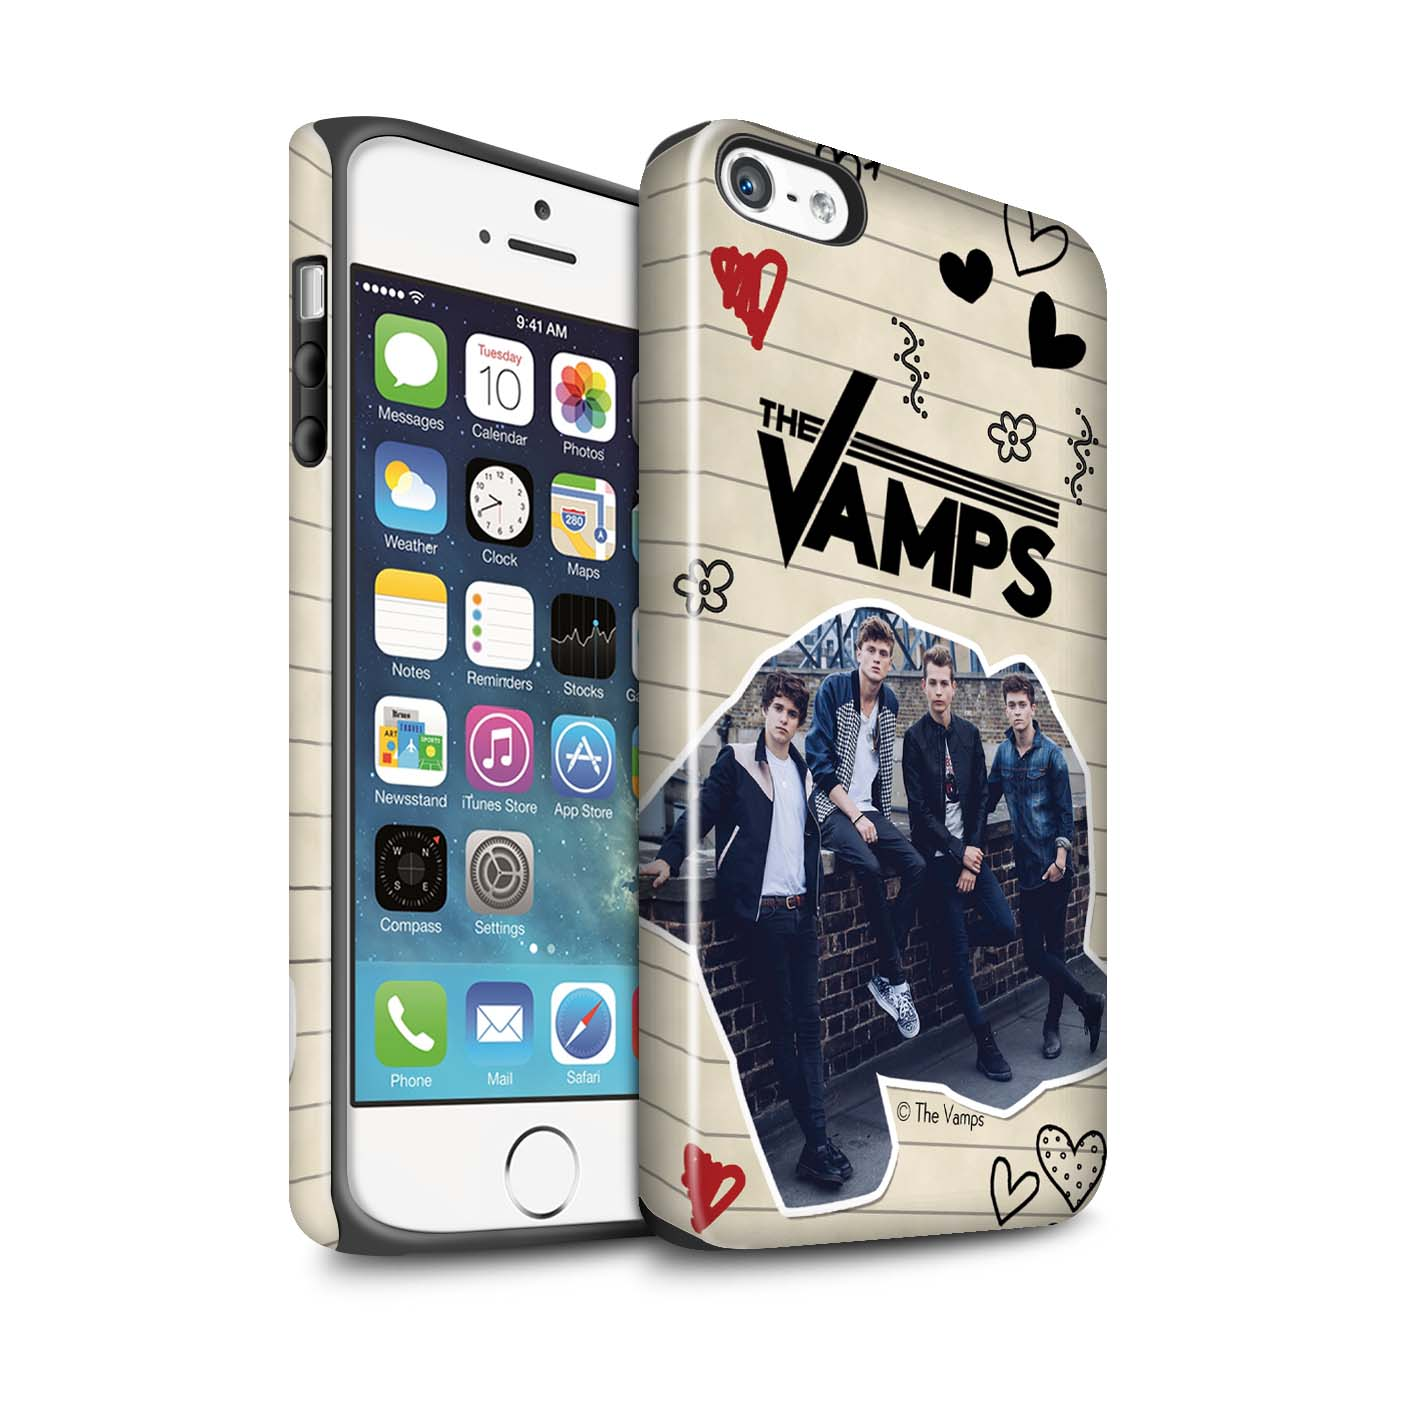 The-Vamps-Coque-Robuste-Brillant-pour-Apple-iPhone-5-5S-The-Vamps-Livre-Doodle